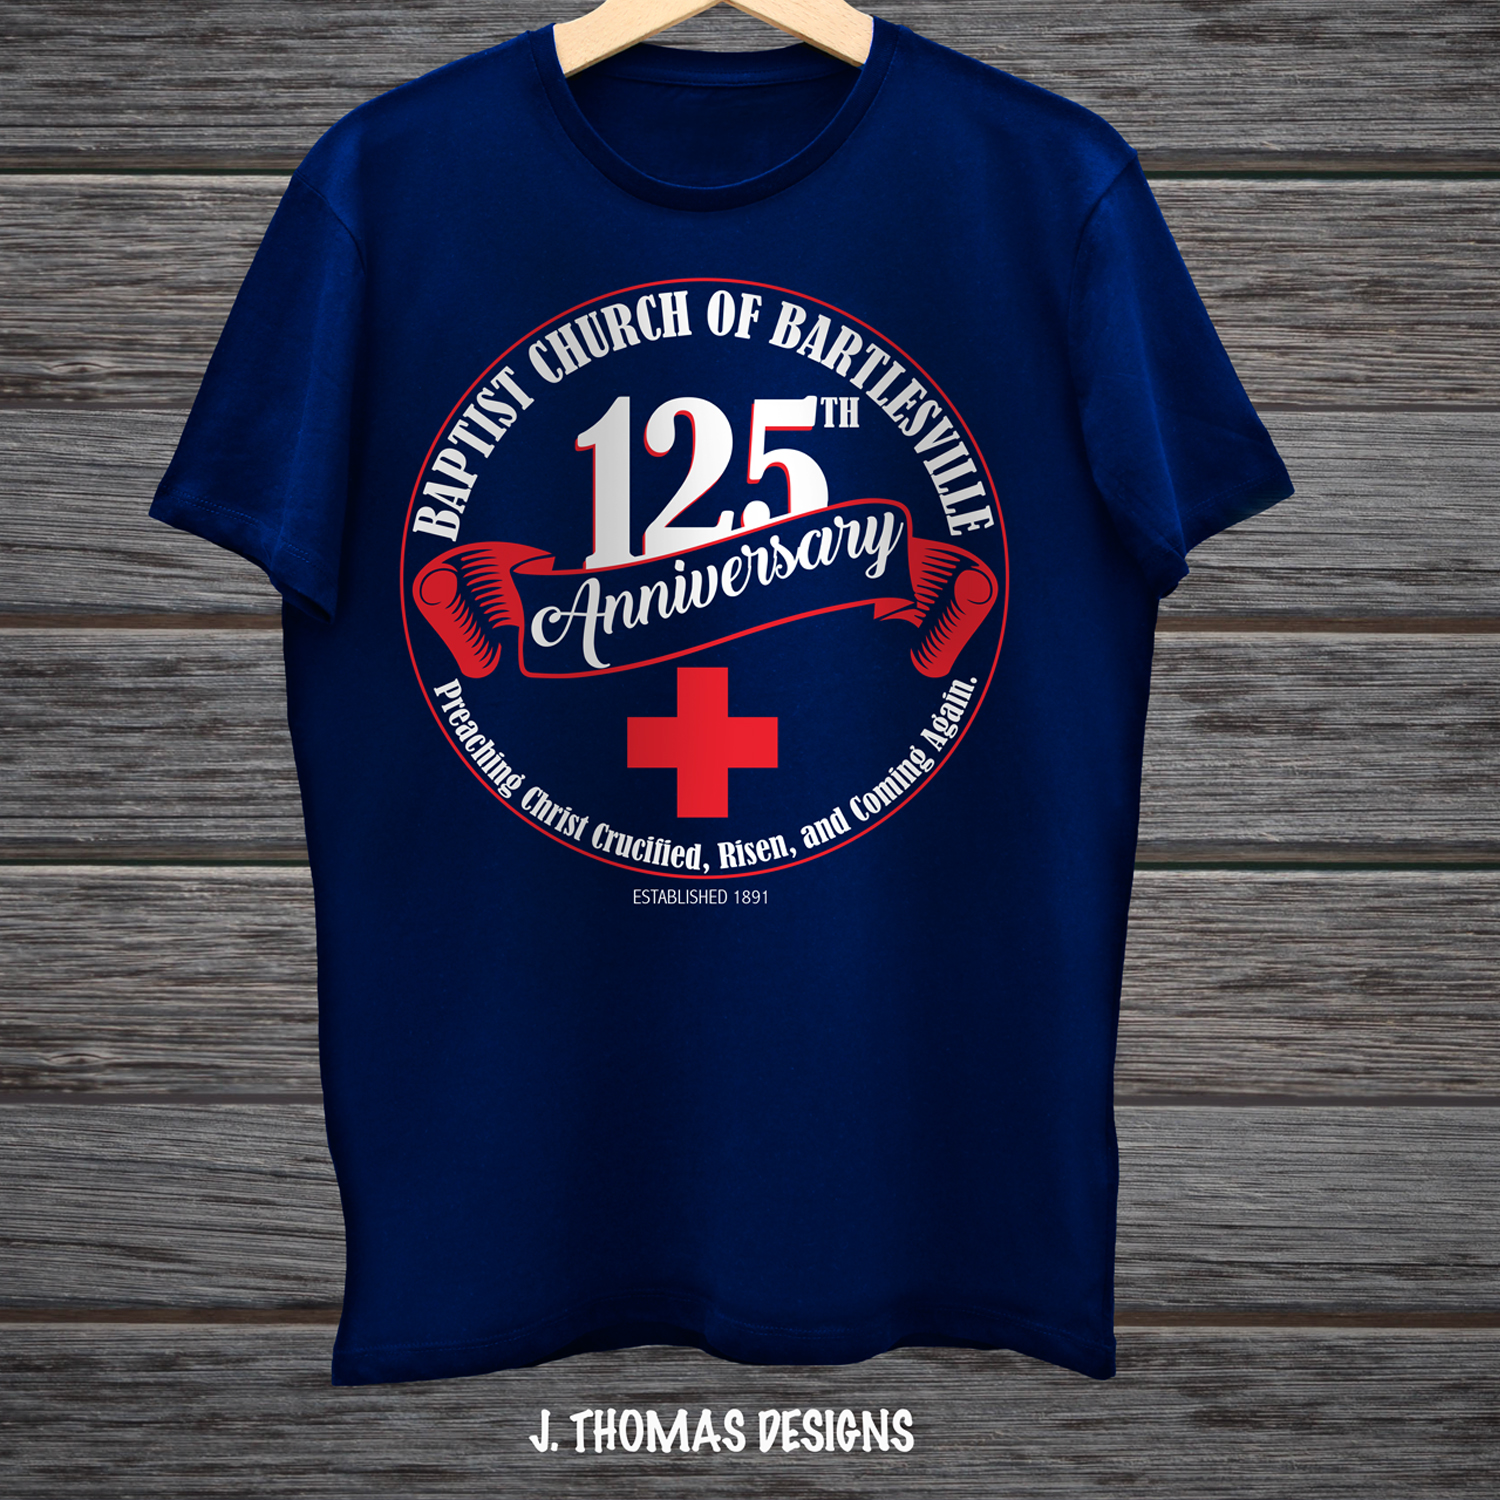 Bold Serious Church T Shirt Design For A Company By J